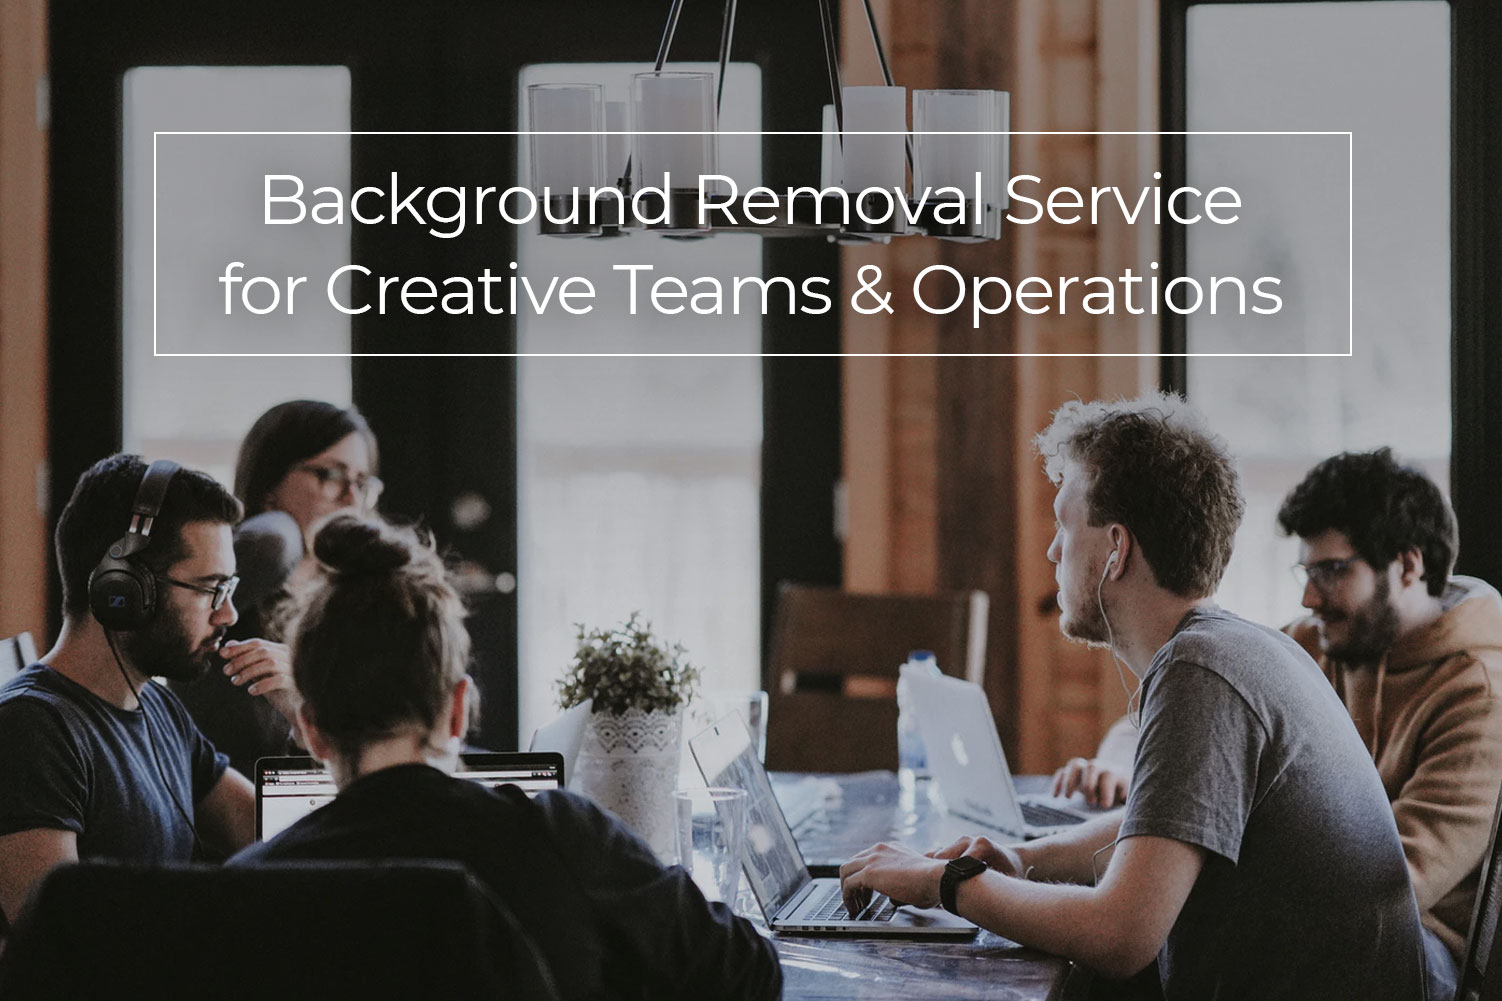 Hiring a Background Removal Service